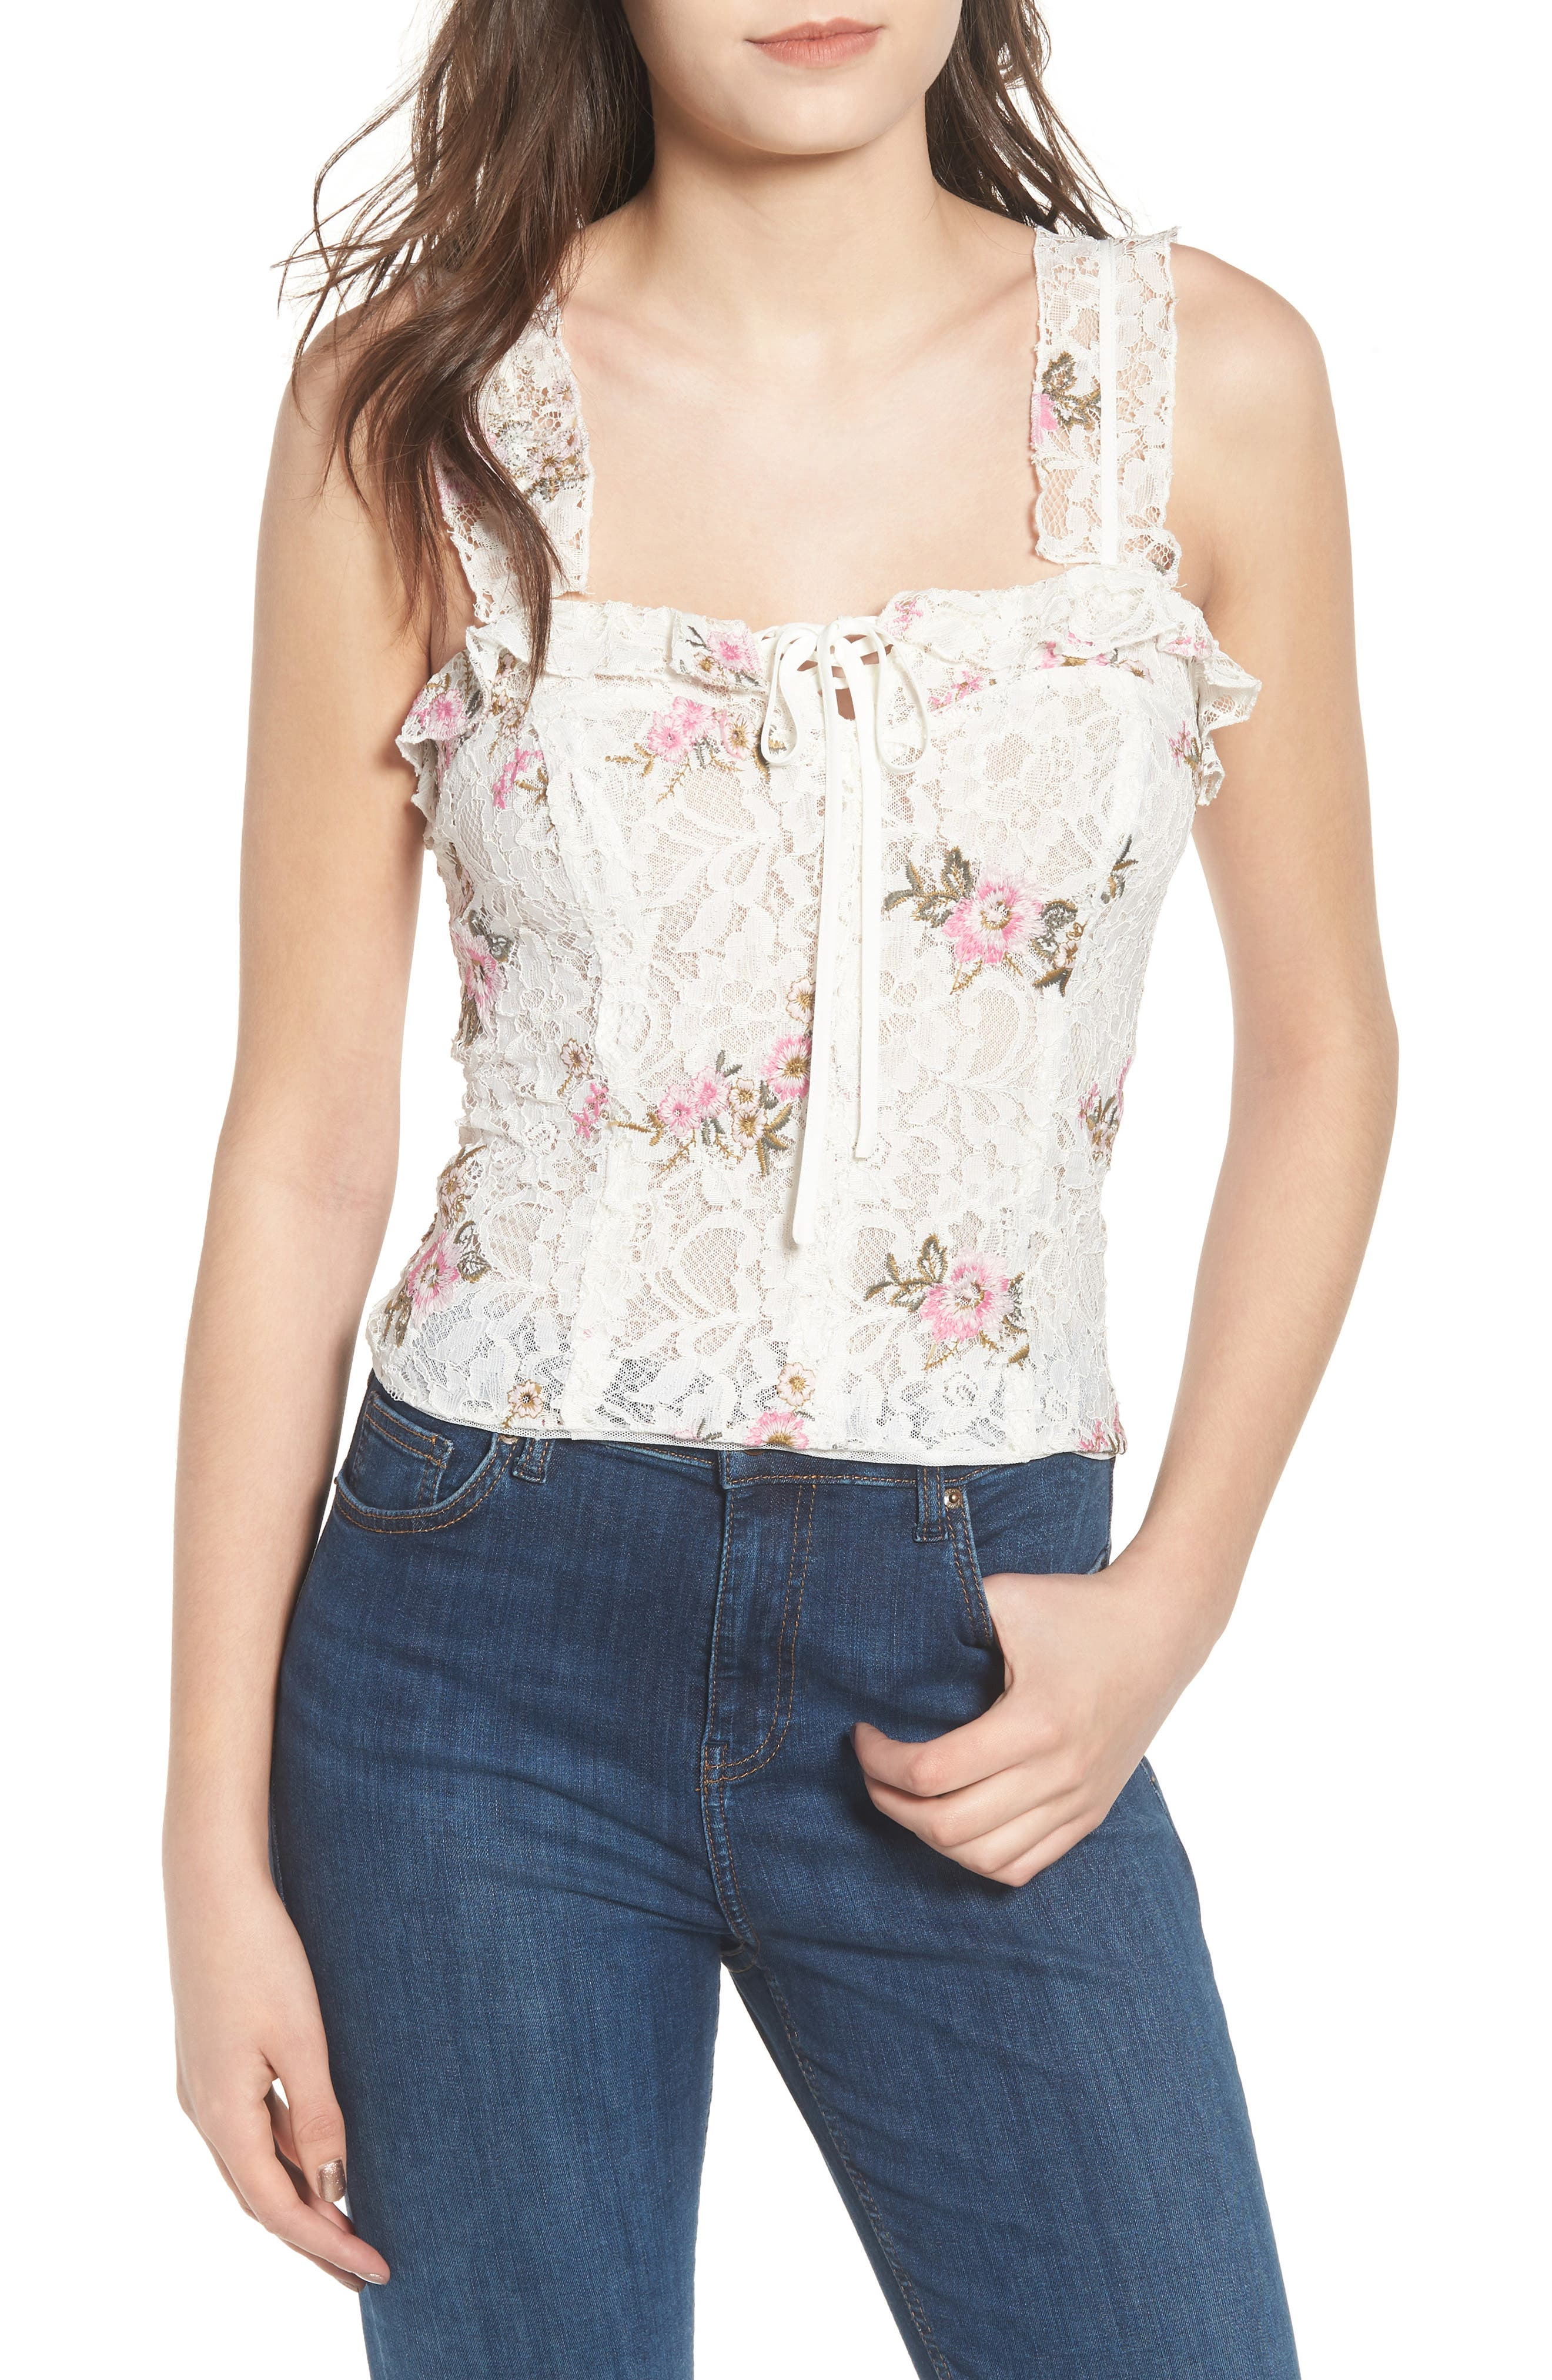 Acerra Lace-Up Lace Top,                         Main,                         color, Ivory Embroidered Lace